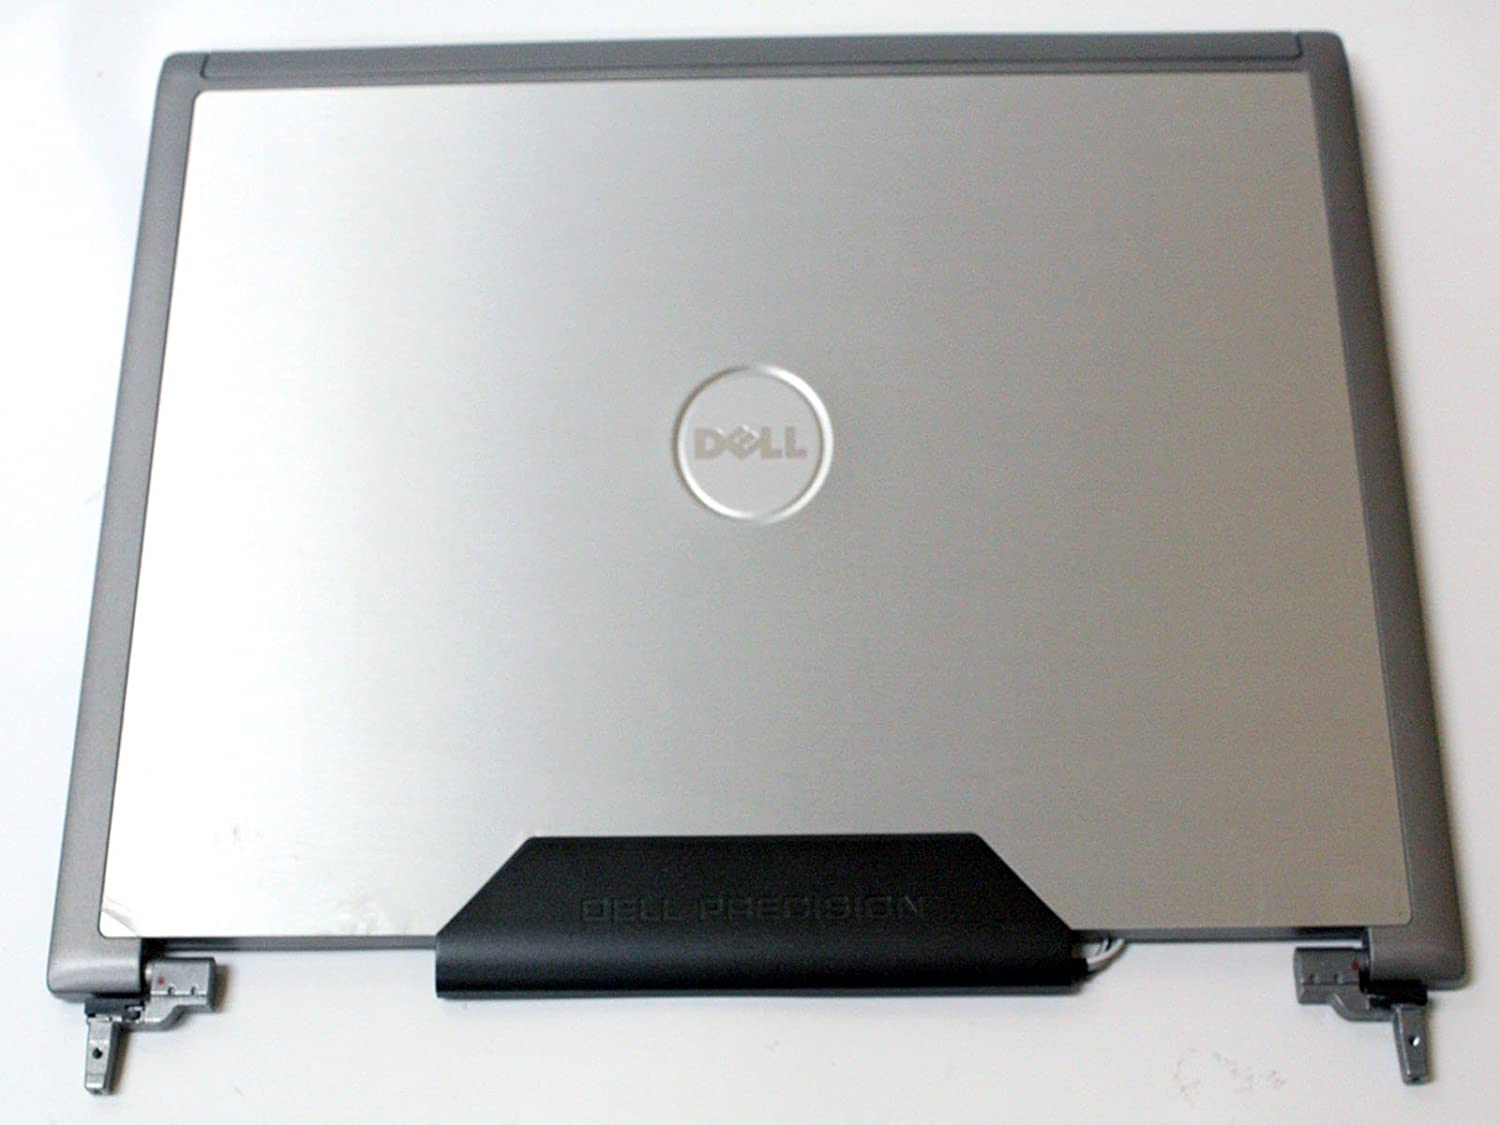 "JD109 - Dell Precision M65 M4300 15.4"" LCD Back Top Cover Lid Plastic Assembly w/ hinges - JD109 - Grade B"